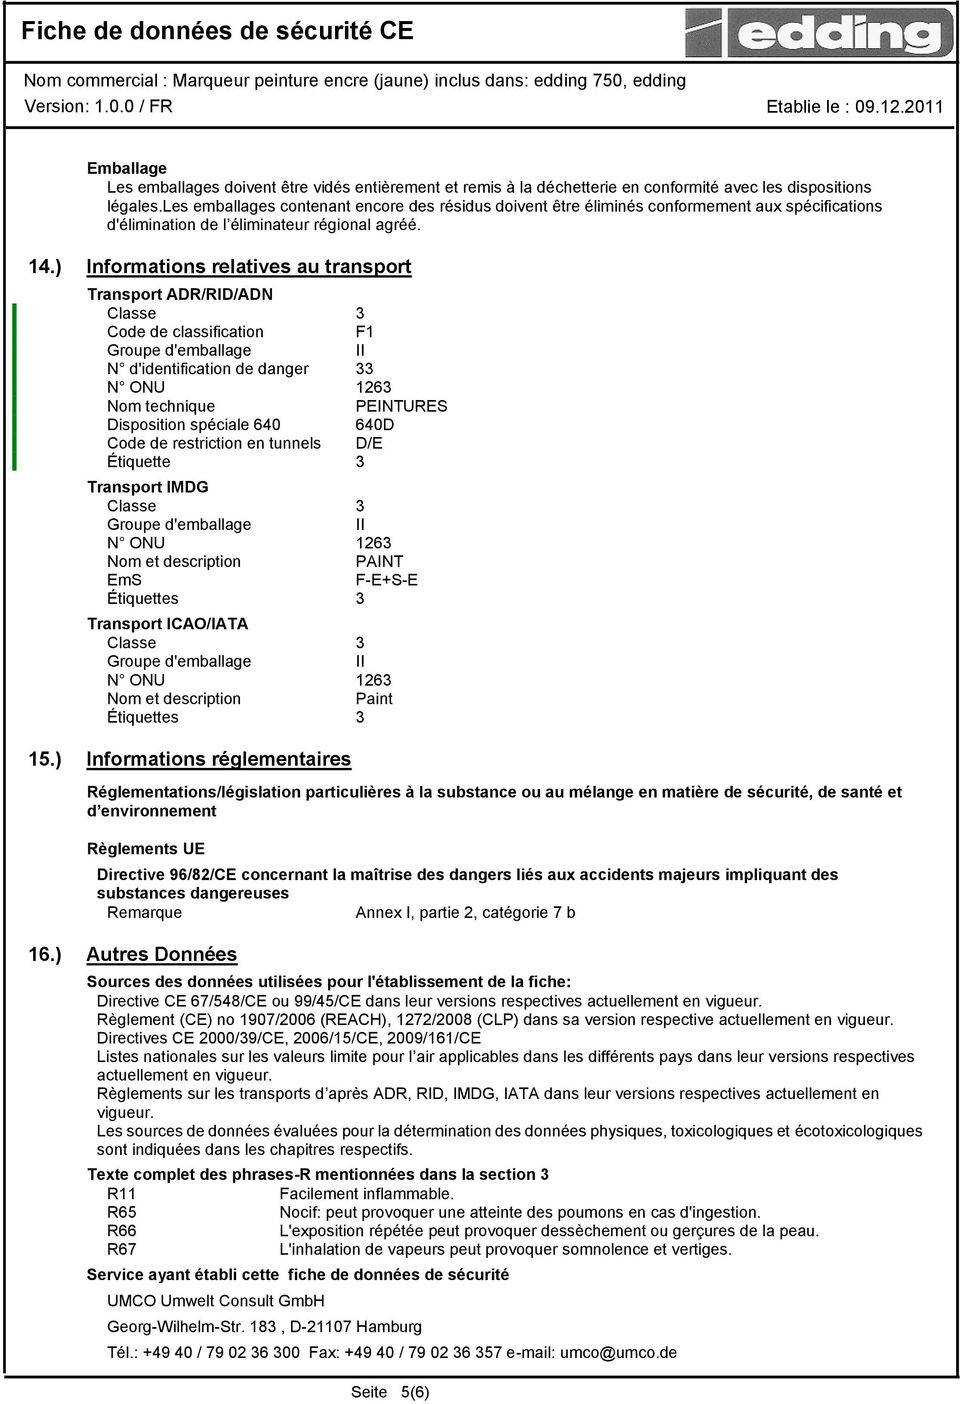 ) Informations relatives au transport Transport ADR/RID/ADN Classe 3 Code de classification F1 Groupe d'emballage II N d'identification de danger 33 N ONU 1263 Nom technique PEINTURES Disposition